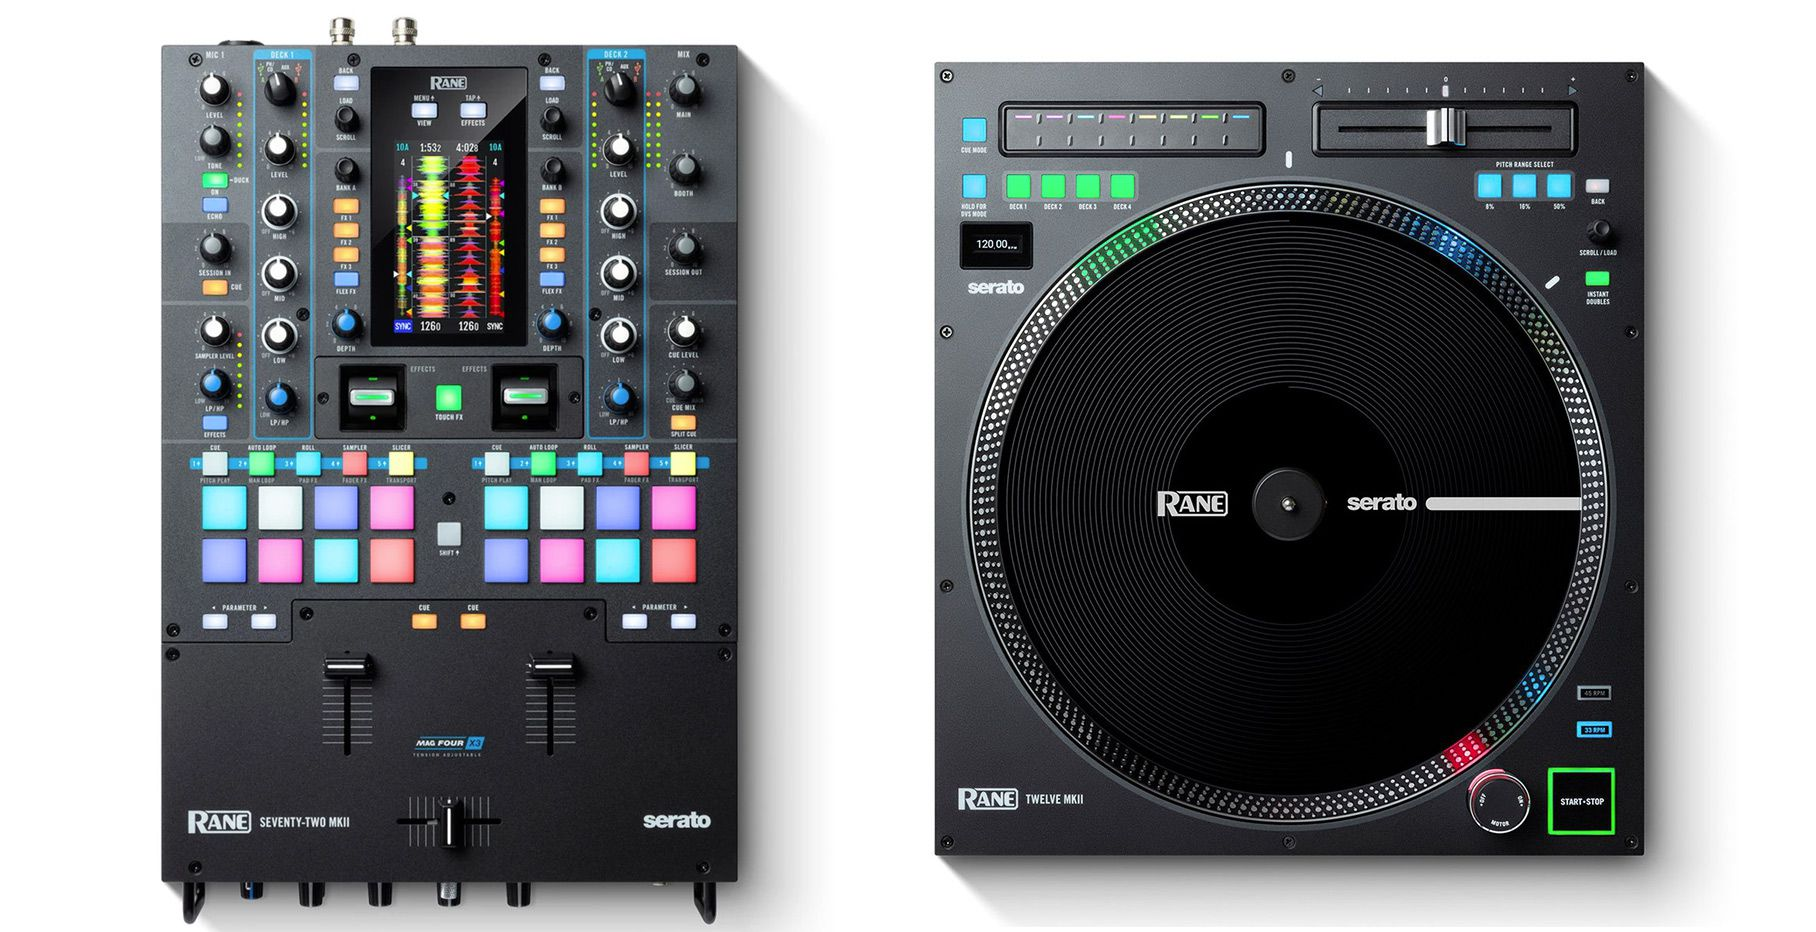 Review: Rane's new Twelve MKII & Seventy-Two MKII